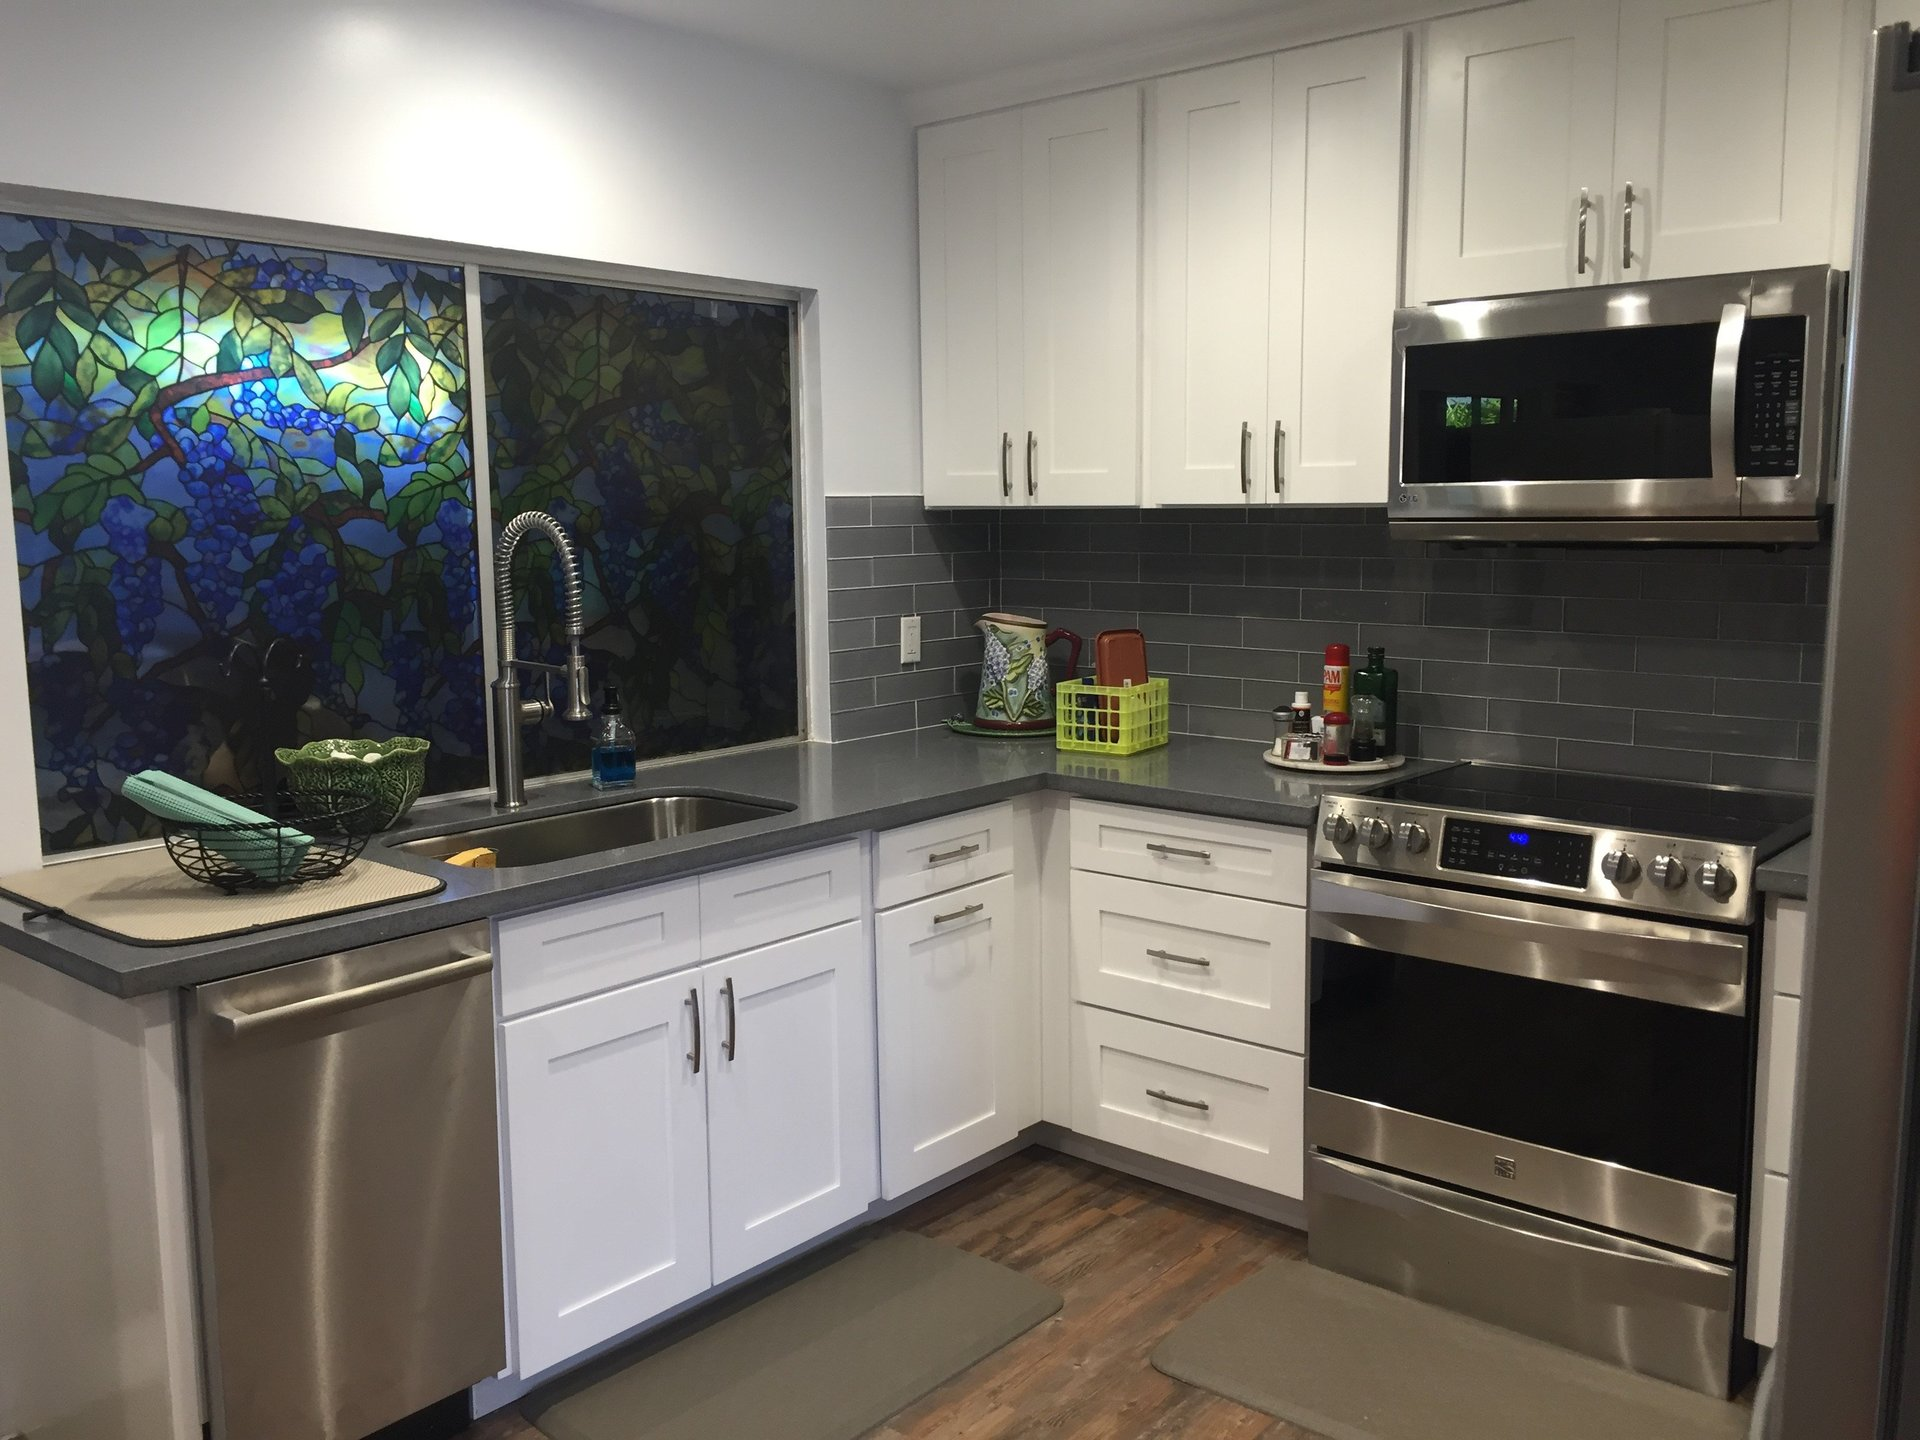 3 ways to choose your new kitchen cabinets caa hawaii for Kitchen cabinets hawaii